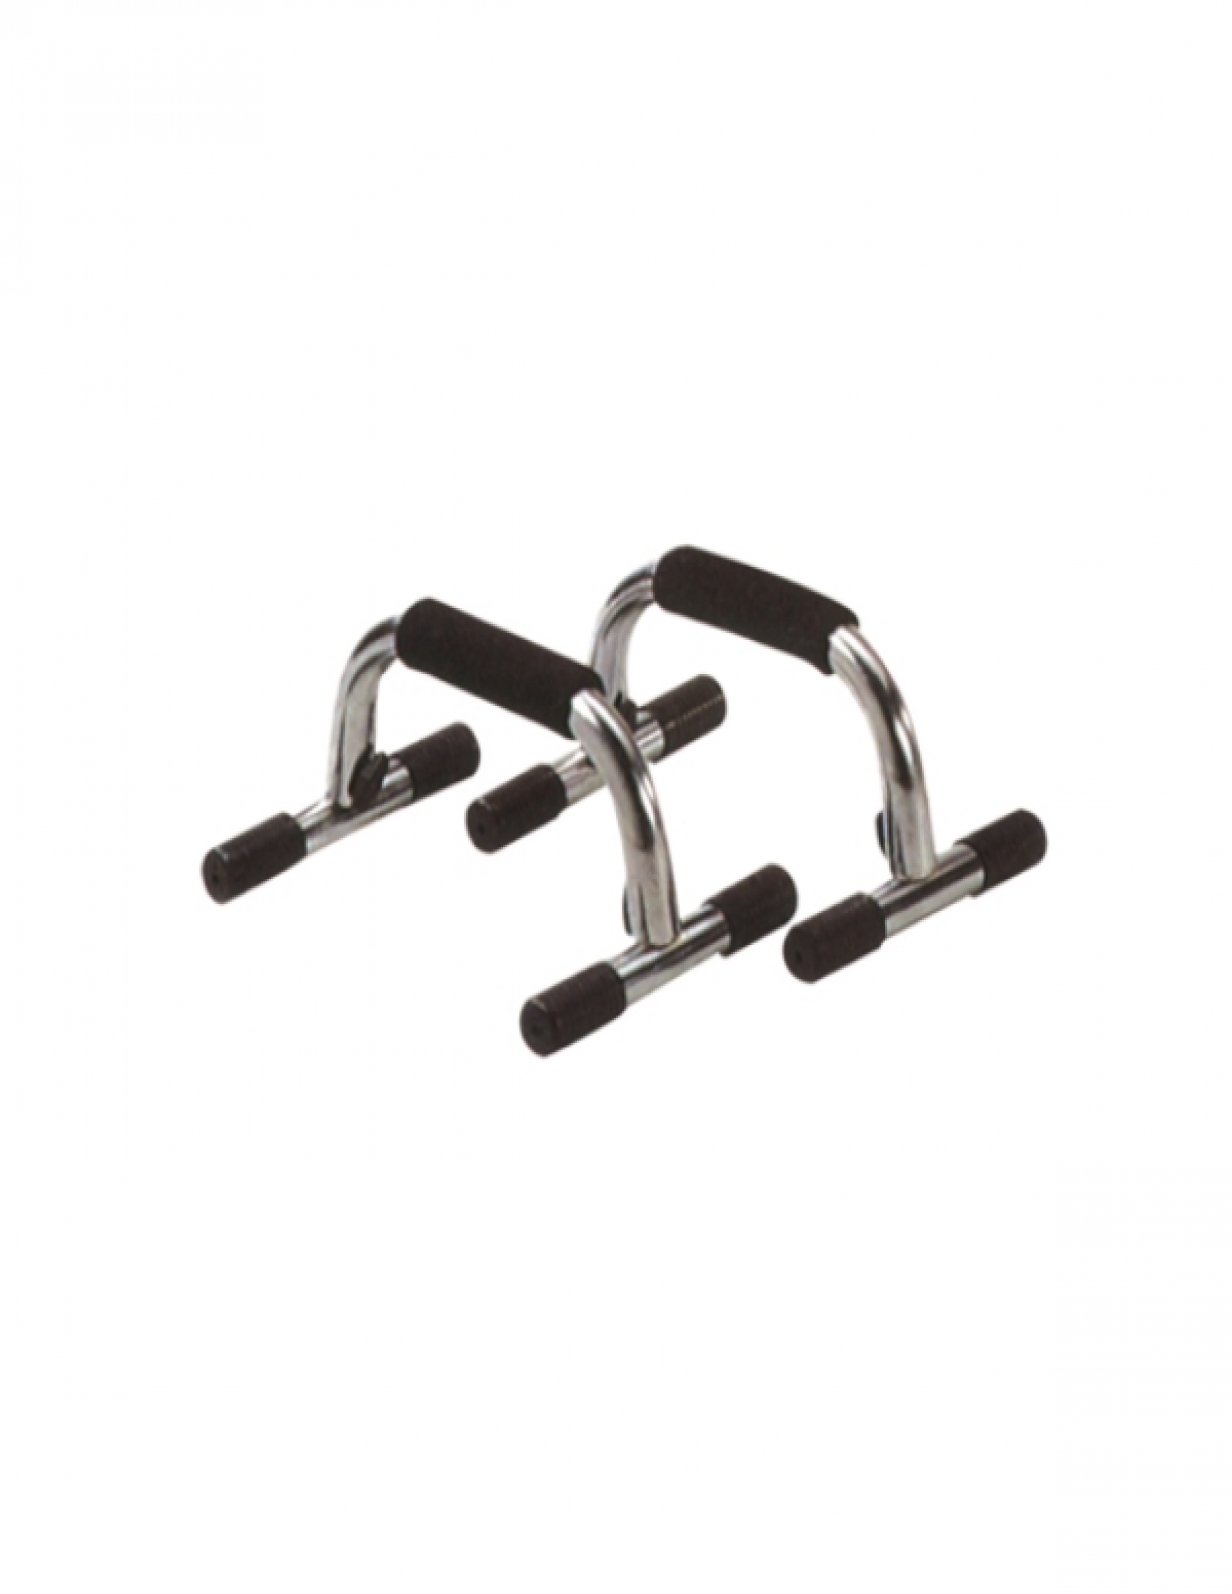 W 1421 Chrome Push Up Bar